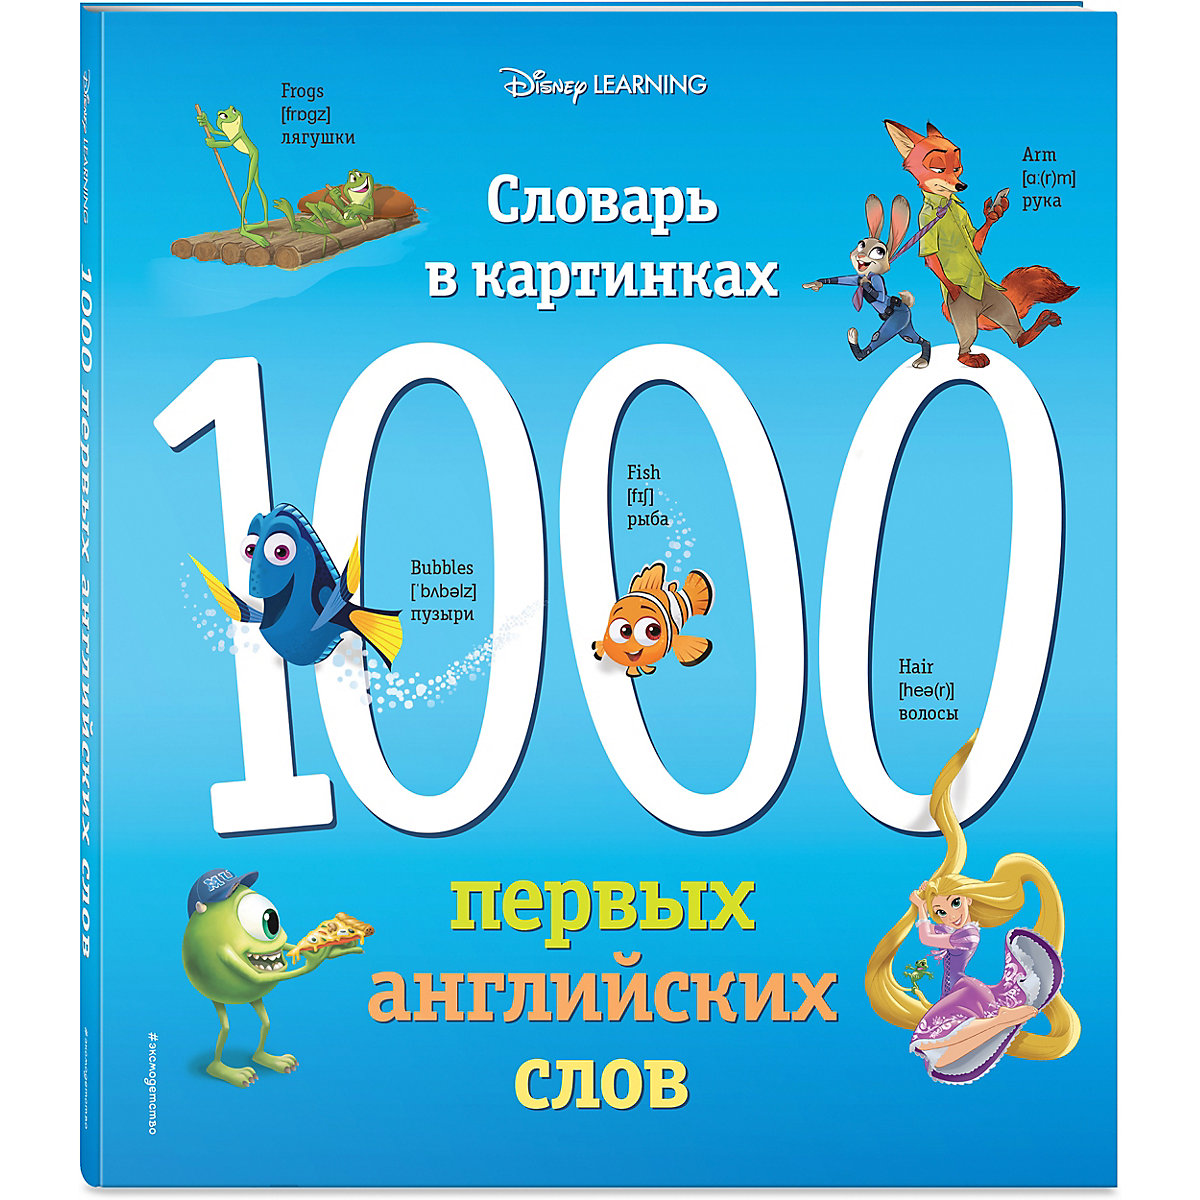 Books EKSMO 9555881 Children Education Encyclopedia Alphabet Dictionary Book For Baby MTpromo